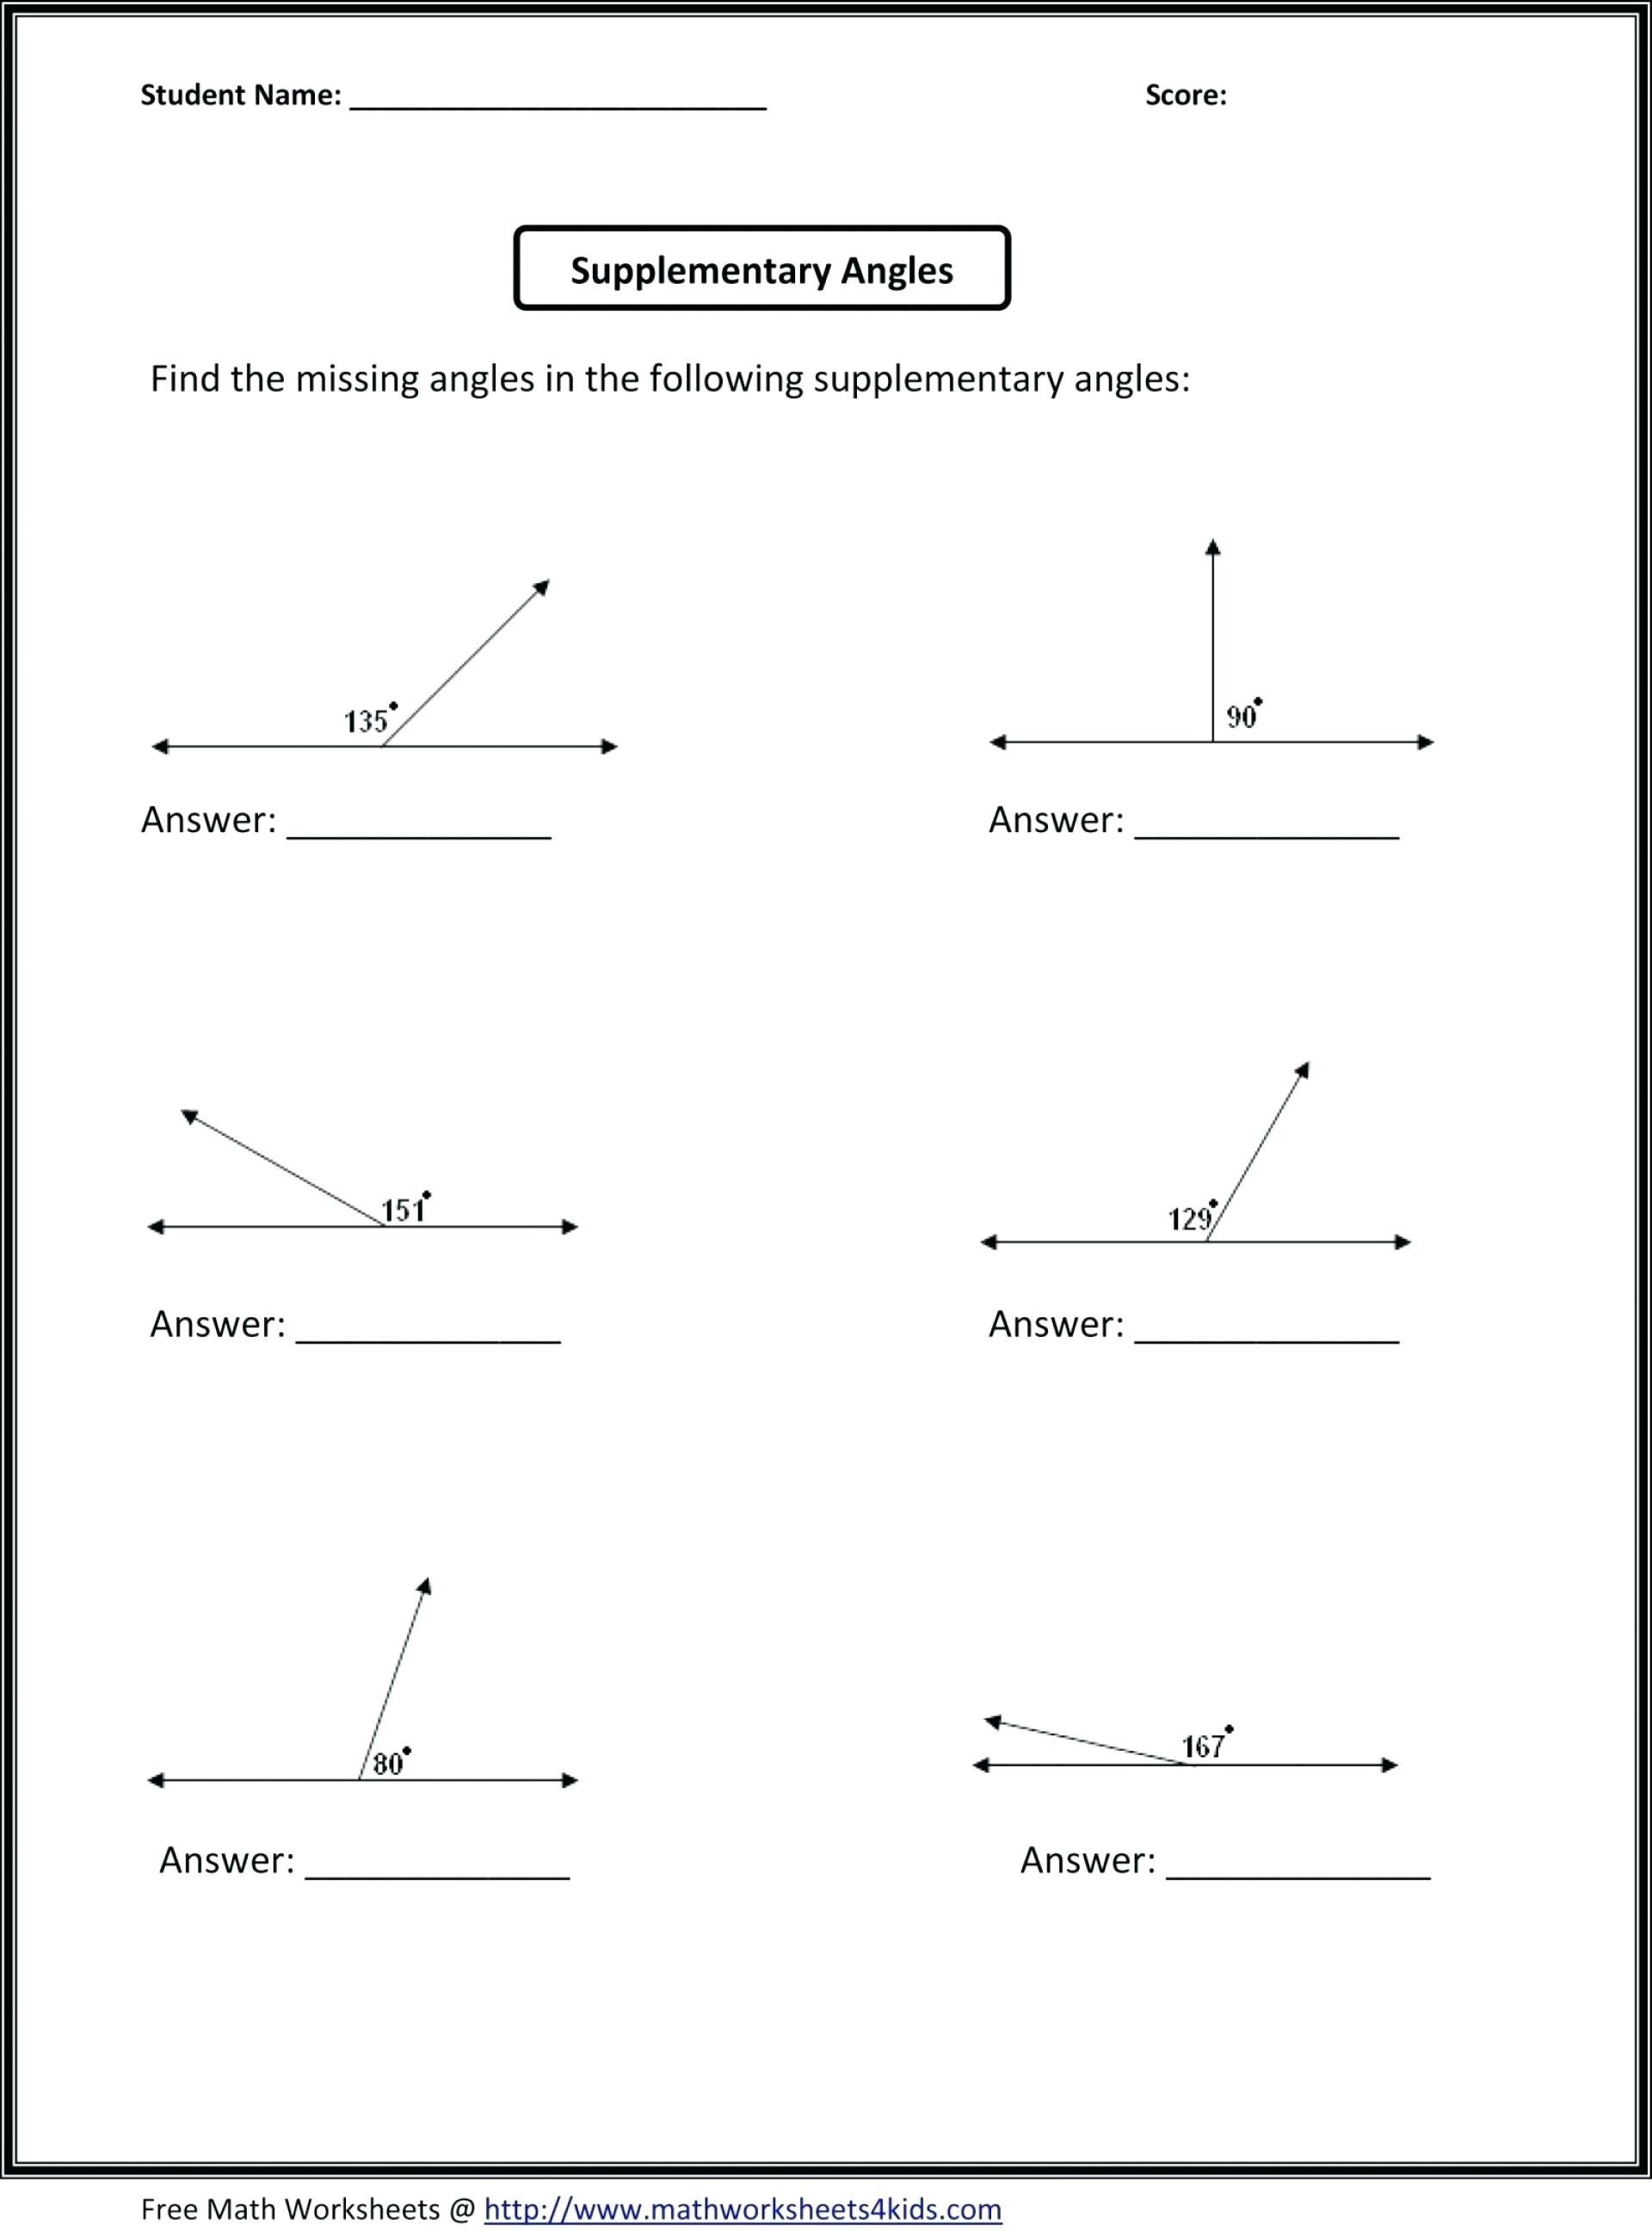 014 Printable Word Problems For 6Th Top Grade Math Worksheets Or Free Printable Math Worksheets For 6Th Grade